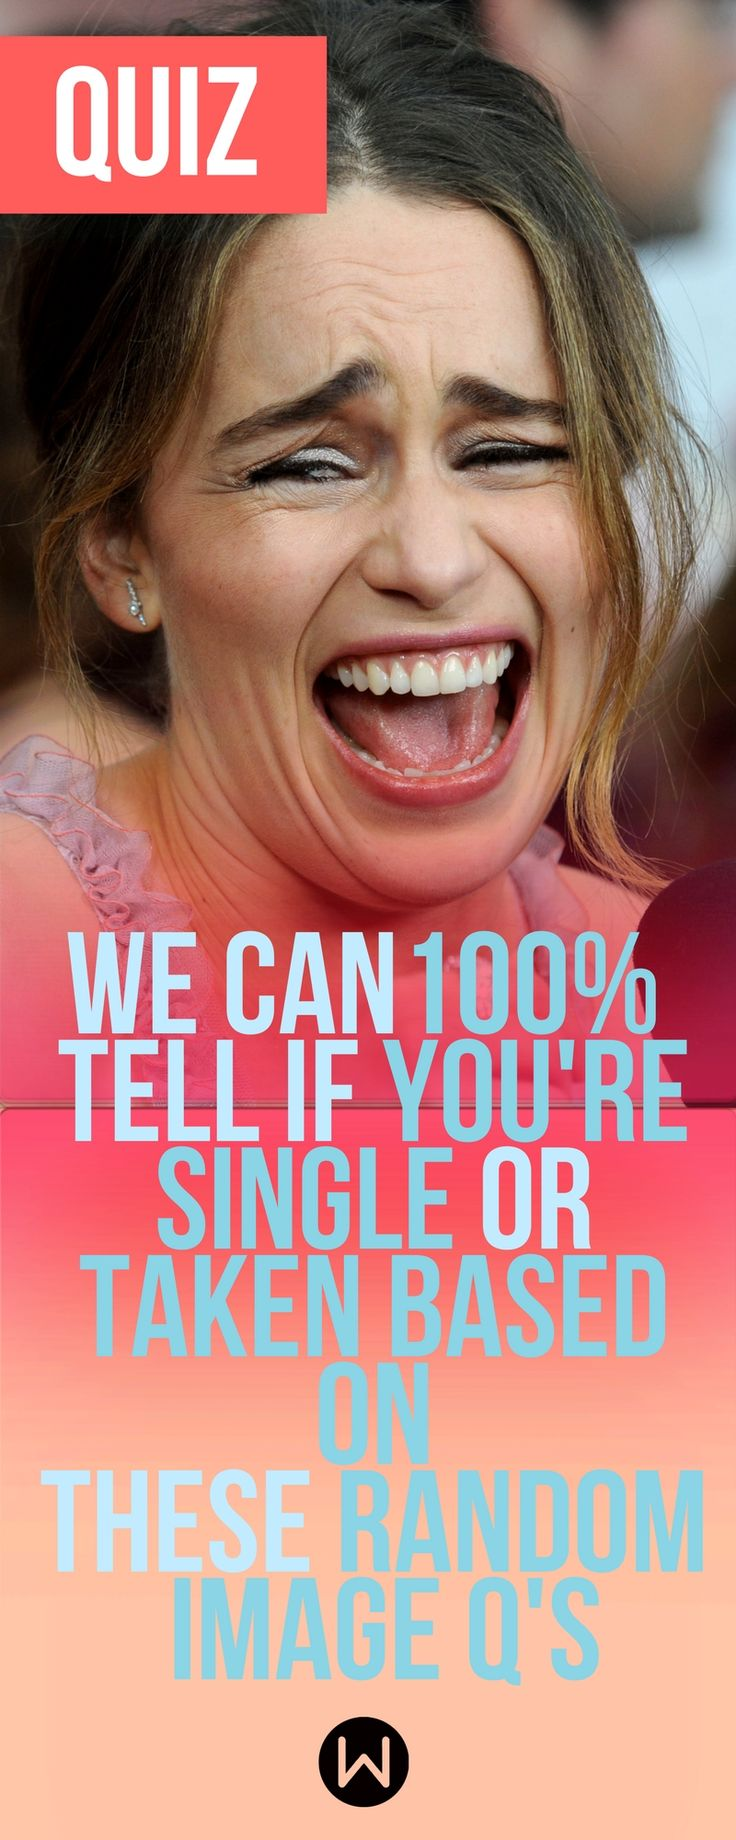 Quiz: We can tell if you're single or taken based on these random images! About Yourself Quiz, Fun Quiz, Personality Test, Random Questions, Personality Quiz, Girl Quiz,Buzzfeed Quizzes, Playbuzz Quiz, Personality Quizzes for Teens, Fun Tests, Personality Types